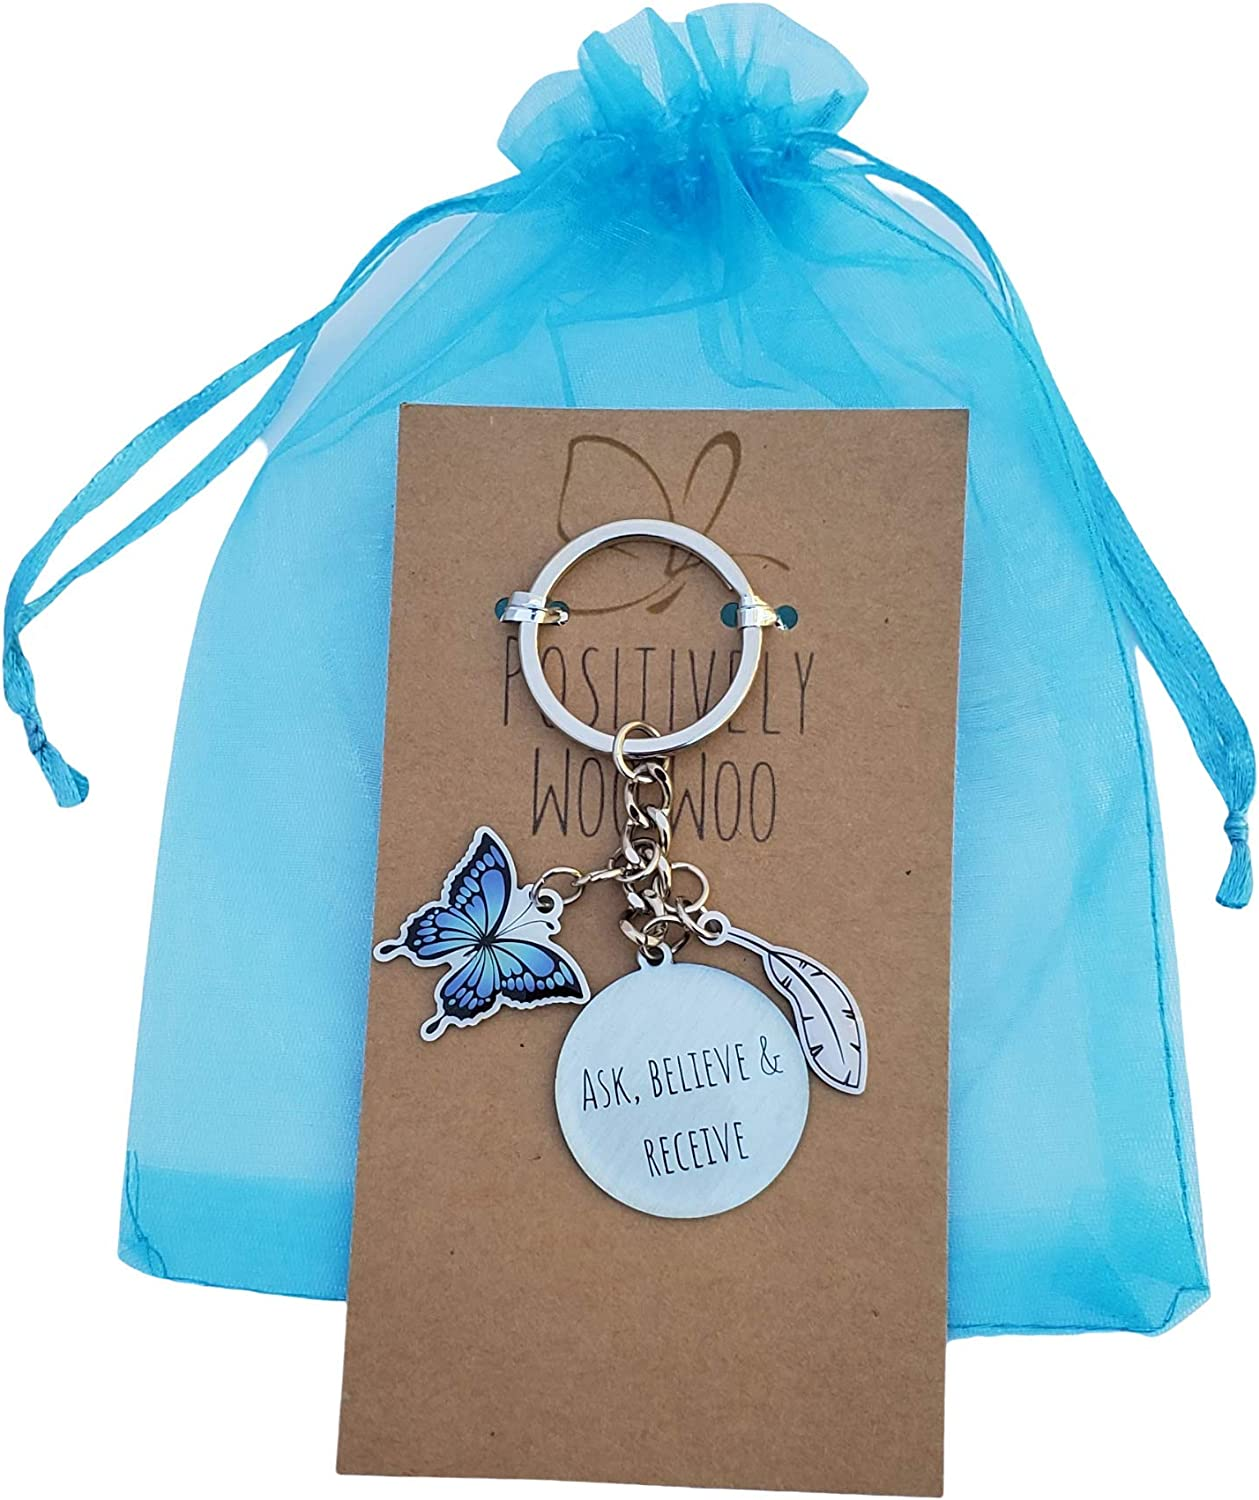 Inspirational Keychain Law Of Attraction Quotes Lucky Feather /& Butterfly Gifts by Positively Woo Woo